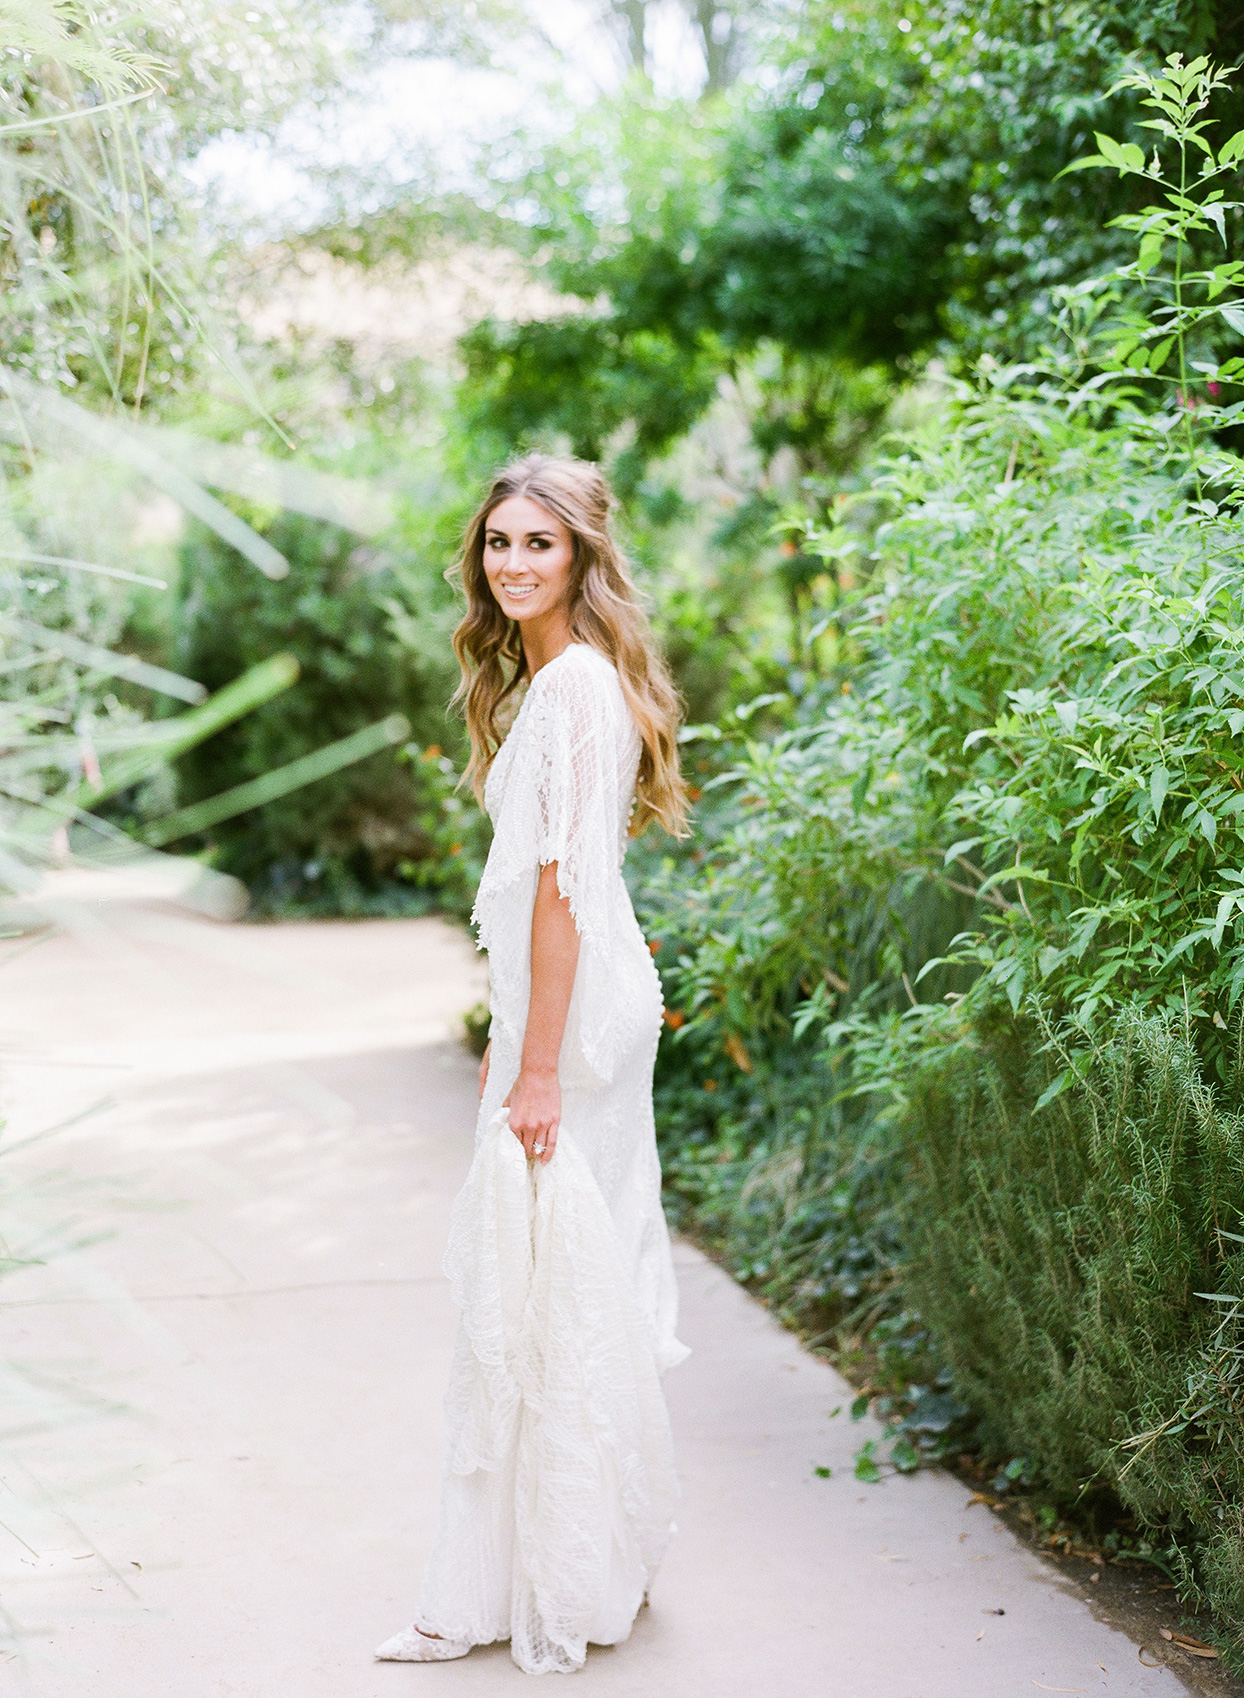 bride in flowing lace white wedding dress